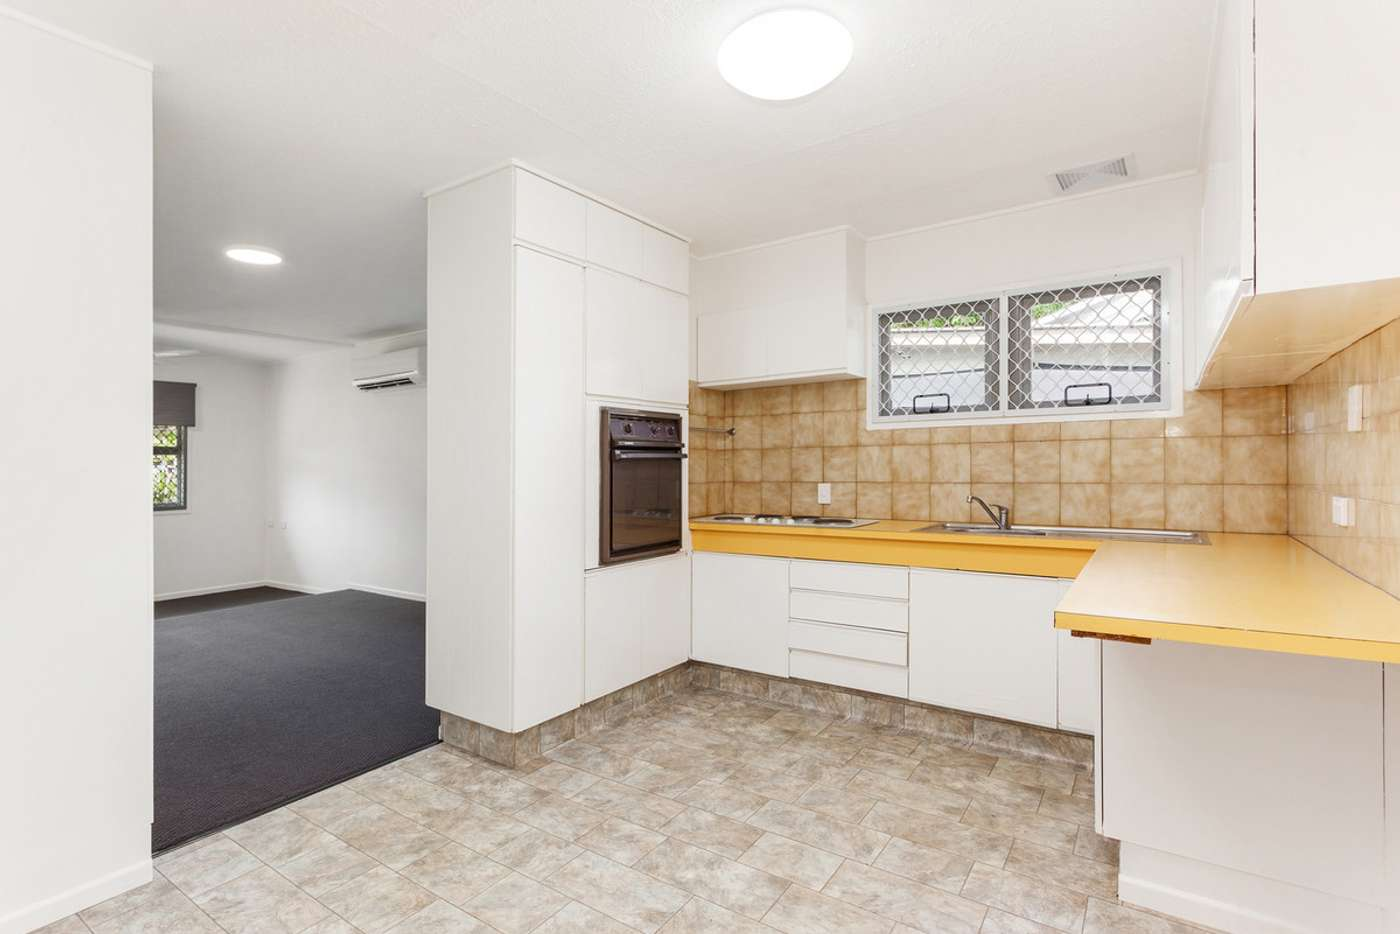 Seventh view of Homely house listing, 14 Bunyip Street, Burleigh Heads QLD 4220